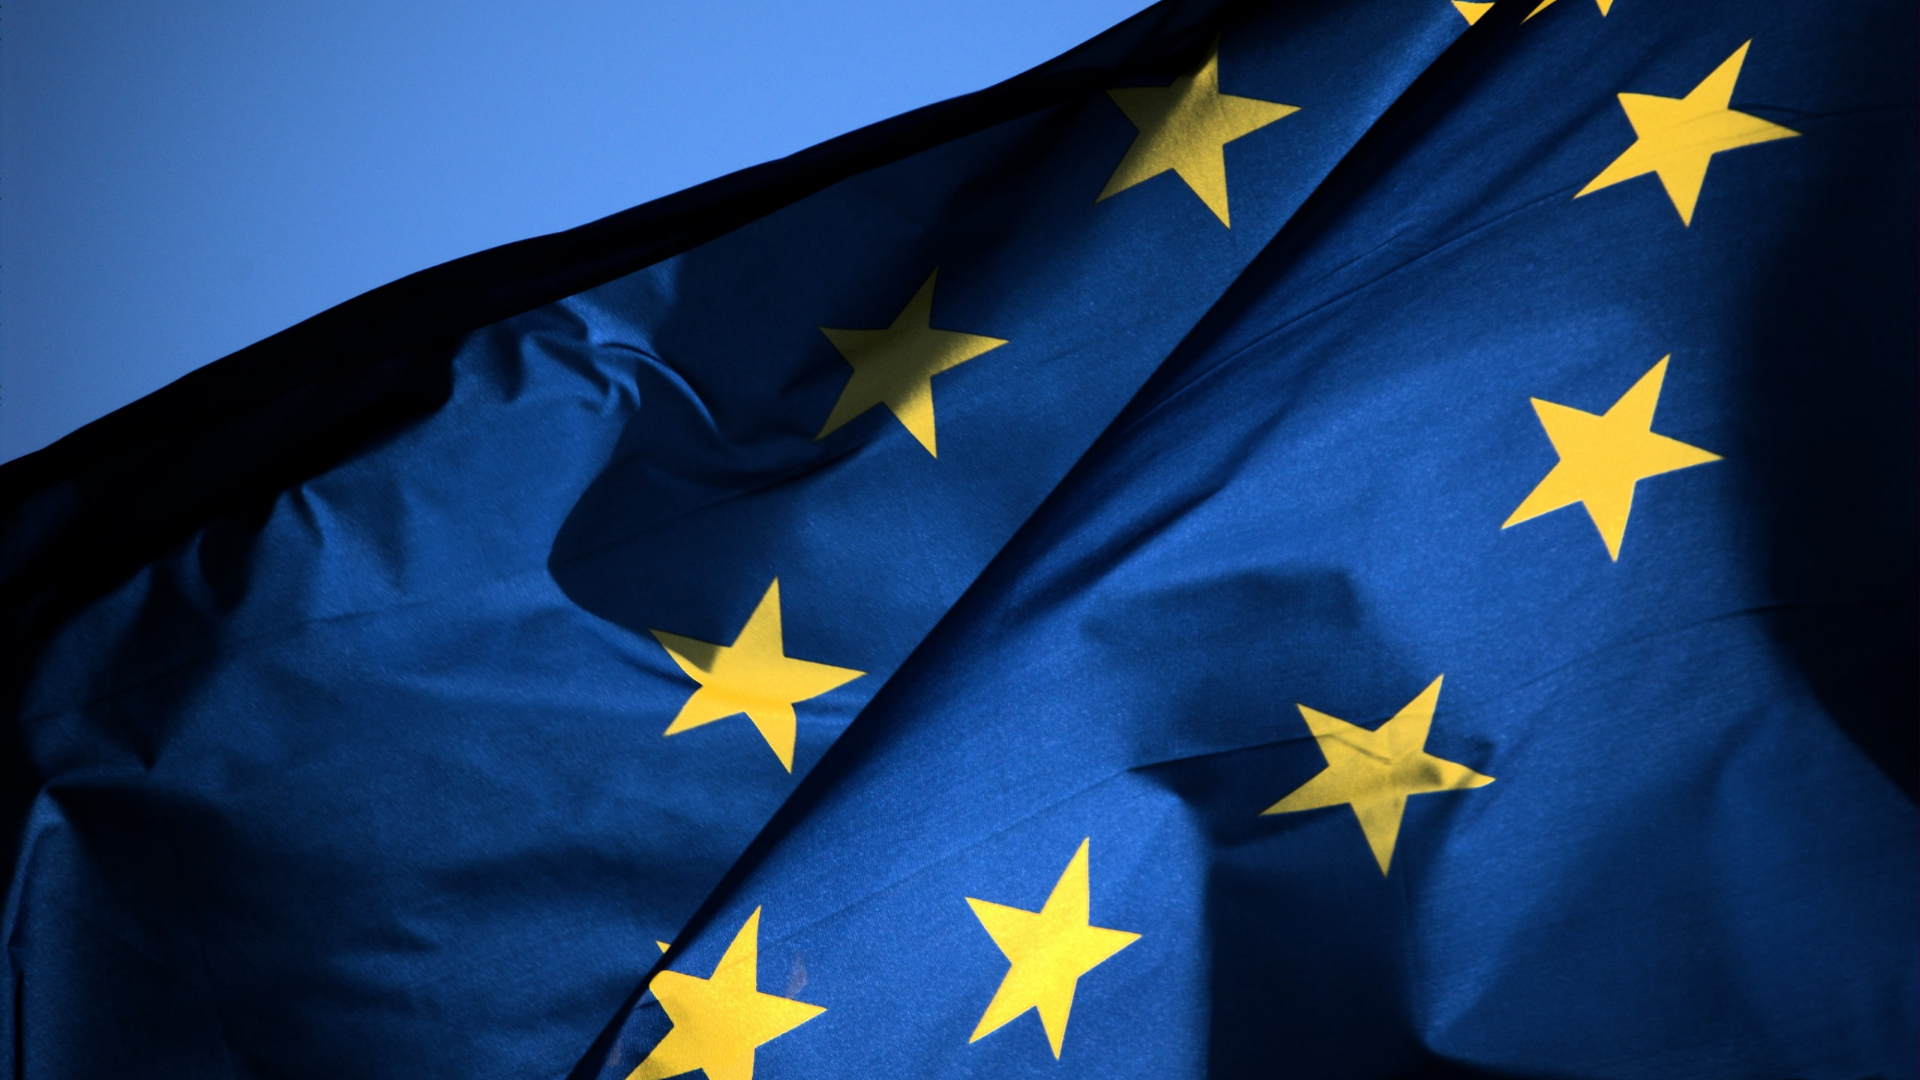 EU Flag-Blue Background